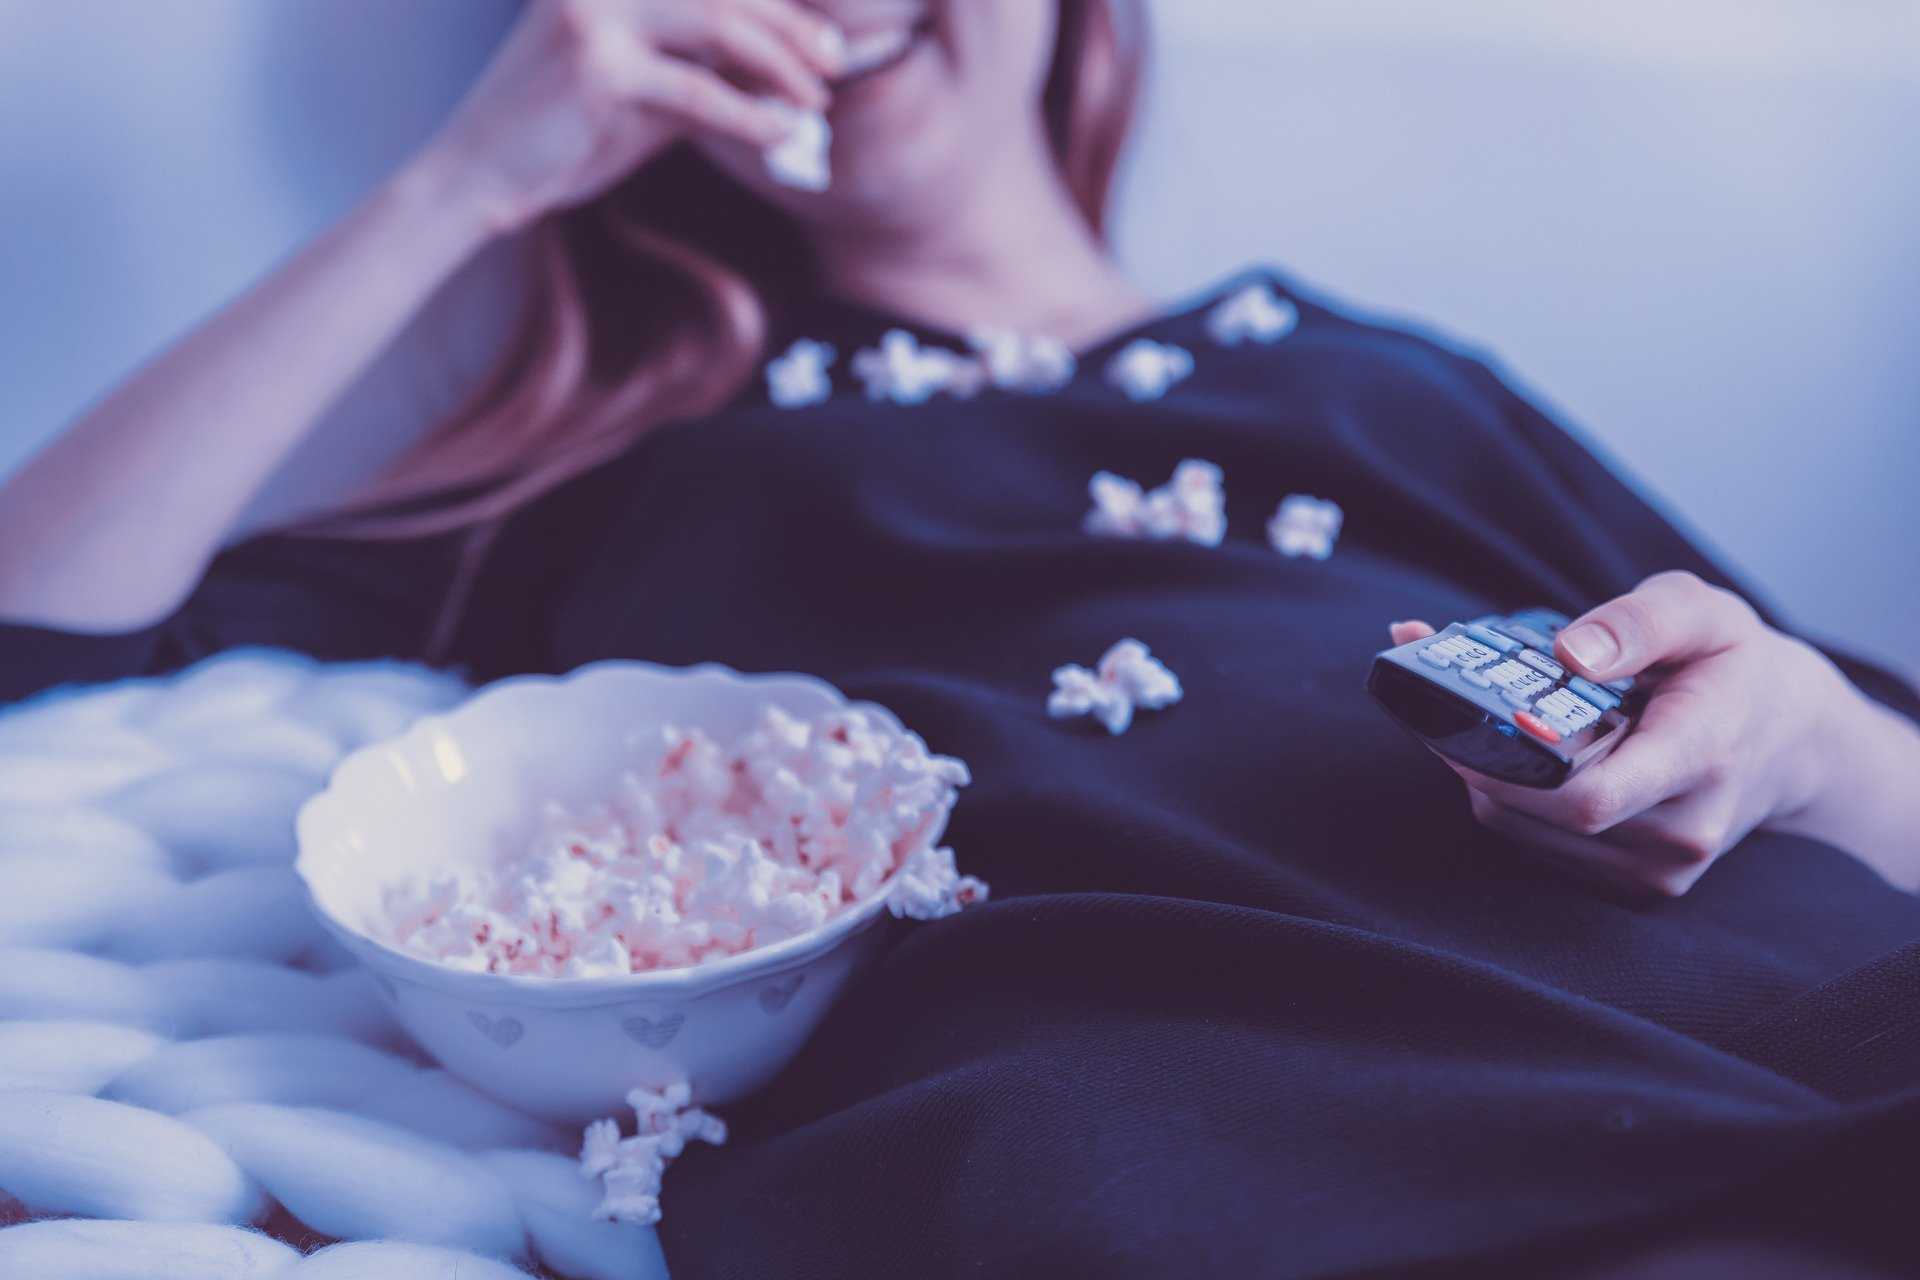 A close up of a young lady sat back eating popcorn as she changes the tv channel with the remote control.